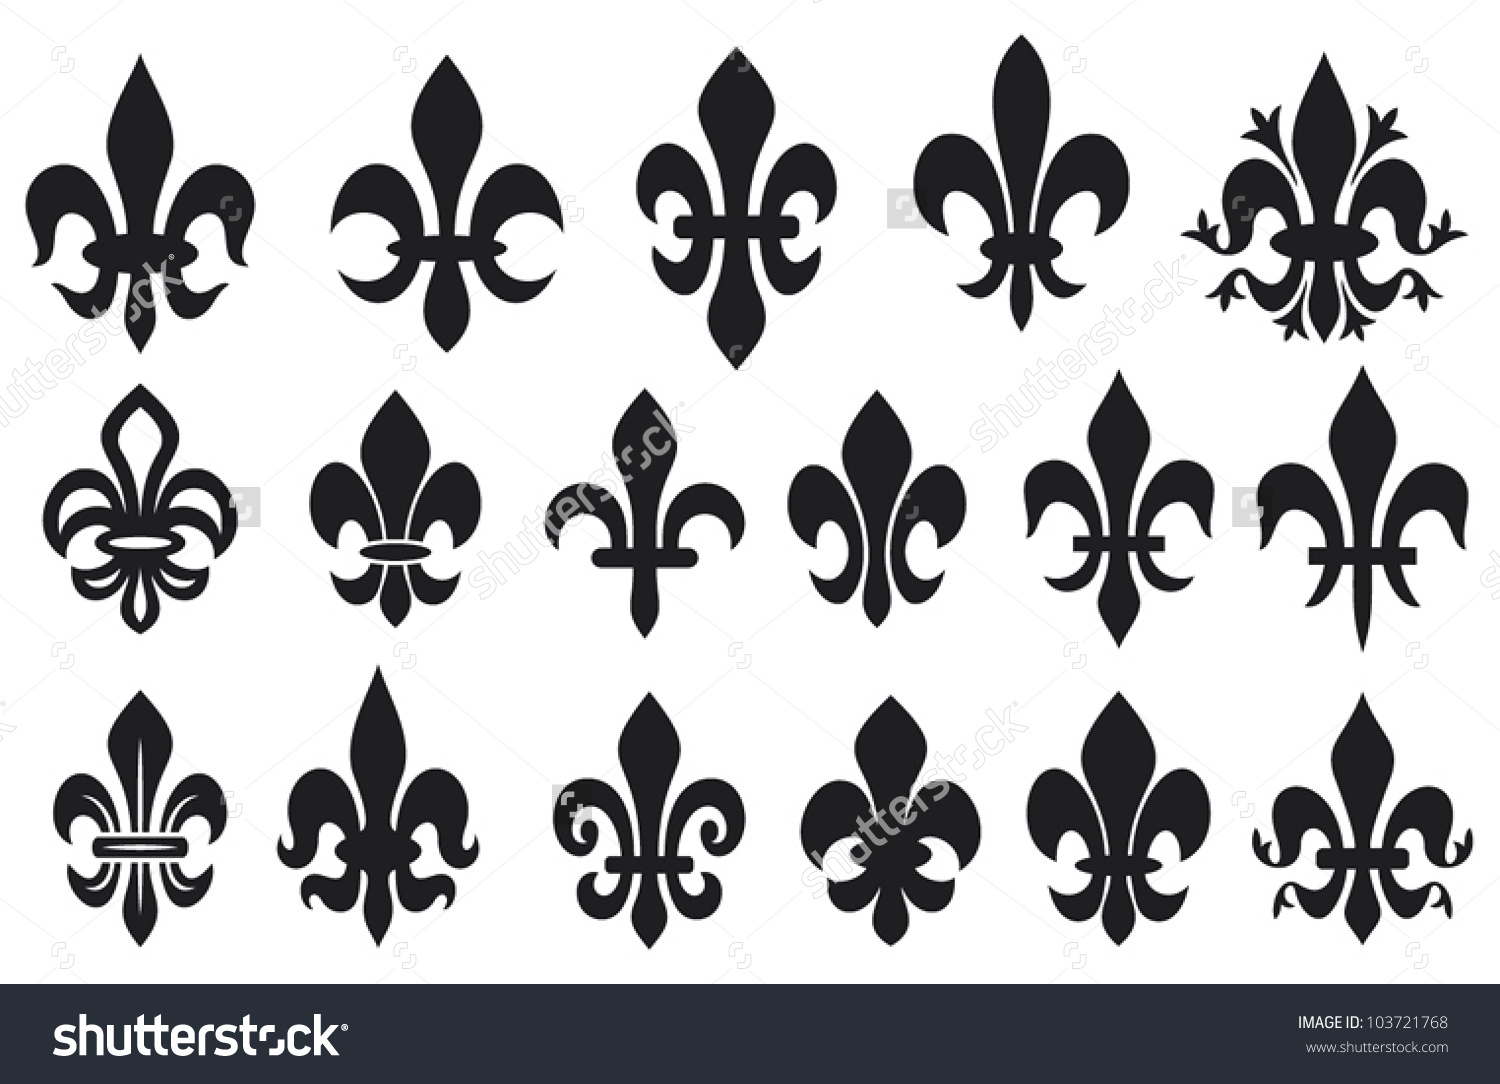 Heraldic animal clipart clipground lily flower collection heraldic symbols stock vector 103721768 buycottarizona